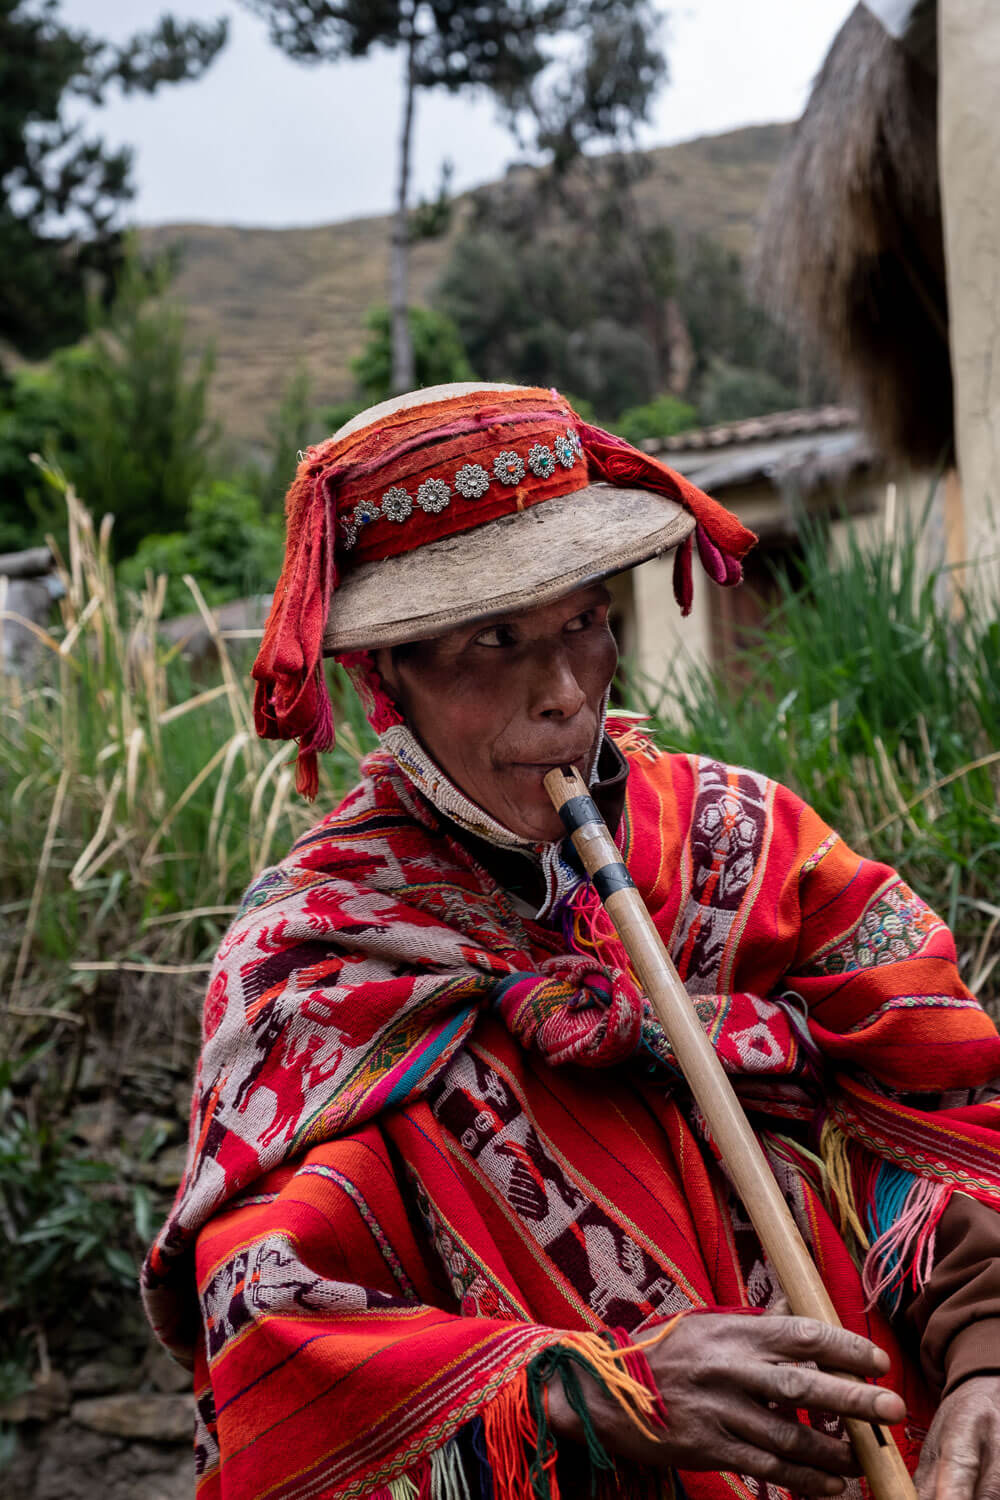 """Learn about the ancient weaving techniques that create beautiful Peruvian garments. The weavers of Patacancha, The Sacred Valley, Peru. Travel photography and guide by © Natasha Lequepeys for """"And Then I Met Yoko"""". #peru #sacredvalley #patacancha #photoblog #travelblog #travelphotography #portraitphotography #travelitinerary #fujifilm #weaving #tradition #culture #people #andes #village #weavingdemonstration #cusco #ollantaytambo #travel #travelperu"""